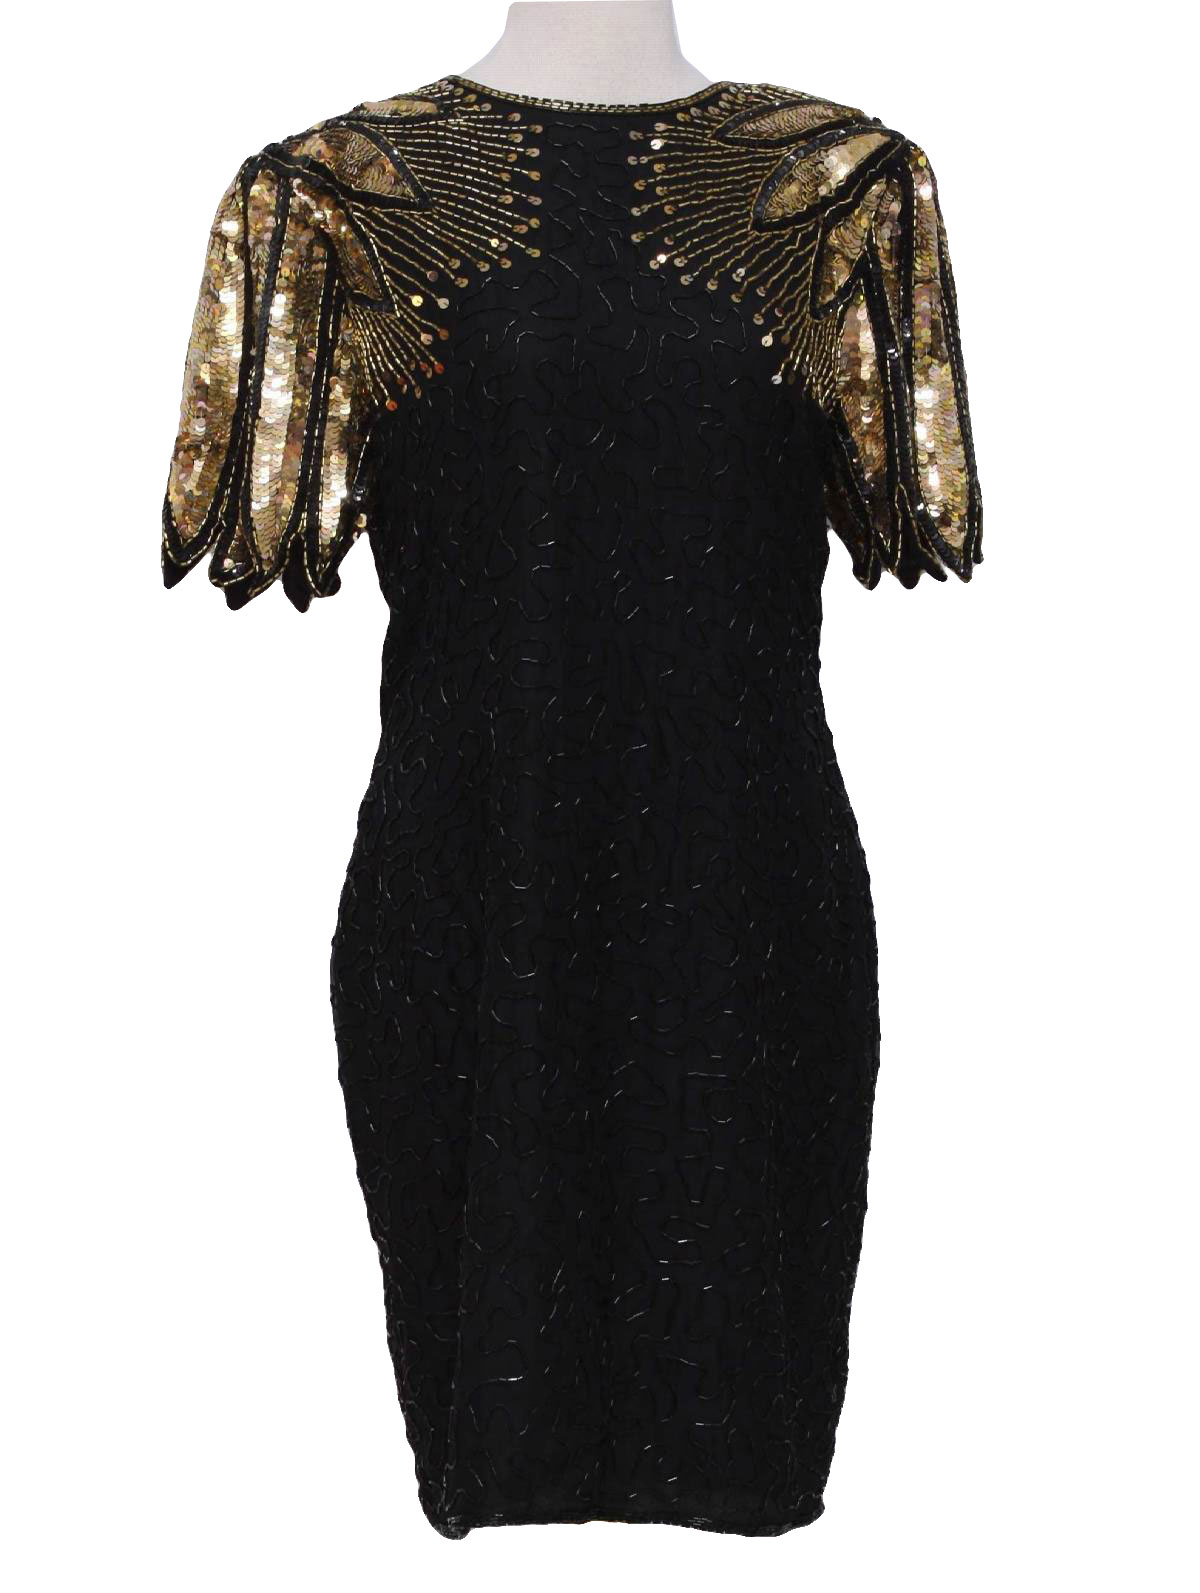 Stenay Eighties Vintage Cocktail Dress: 80s -Stenay- Womens black background silk, polyester lined mid length, short sleeve totally 80s cocktail dress with thick shoulder pads, rounded neckline, tear drop style open back with hook tab closure above rear zip. Dress has heavily beaded and sequins in gold and black with sharp leaf style design that evokes a butterflys wings along padded shoulders and down upper bodice. Tight wiggle cut styling with rear slit along normally box cut hem.